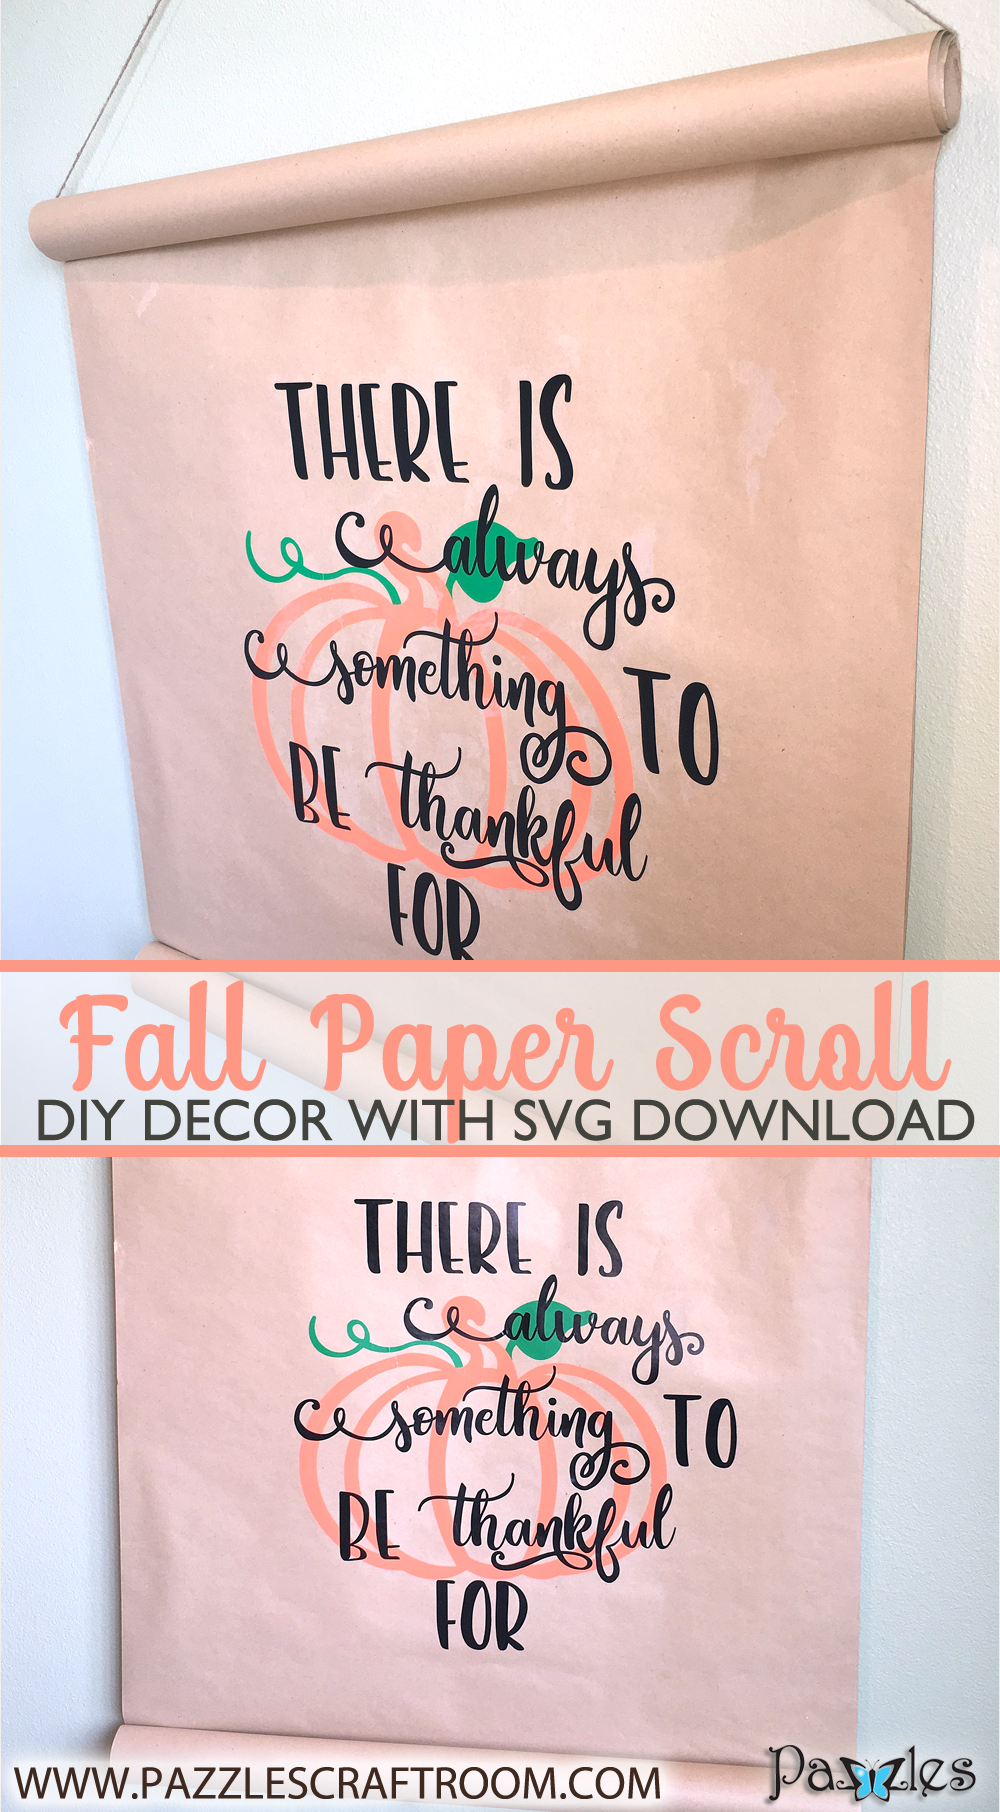 Pazzles DIY Fall Home Decor Paper Scroll with SVG download compatible with Pazzles Inspiration, Cricut, and Silhuette Cameo by Sara Weber